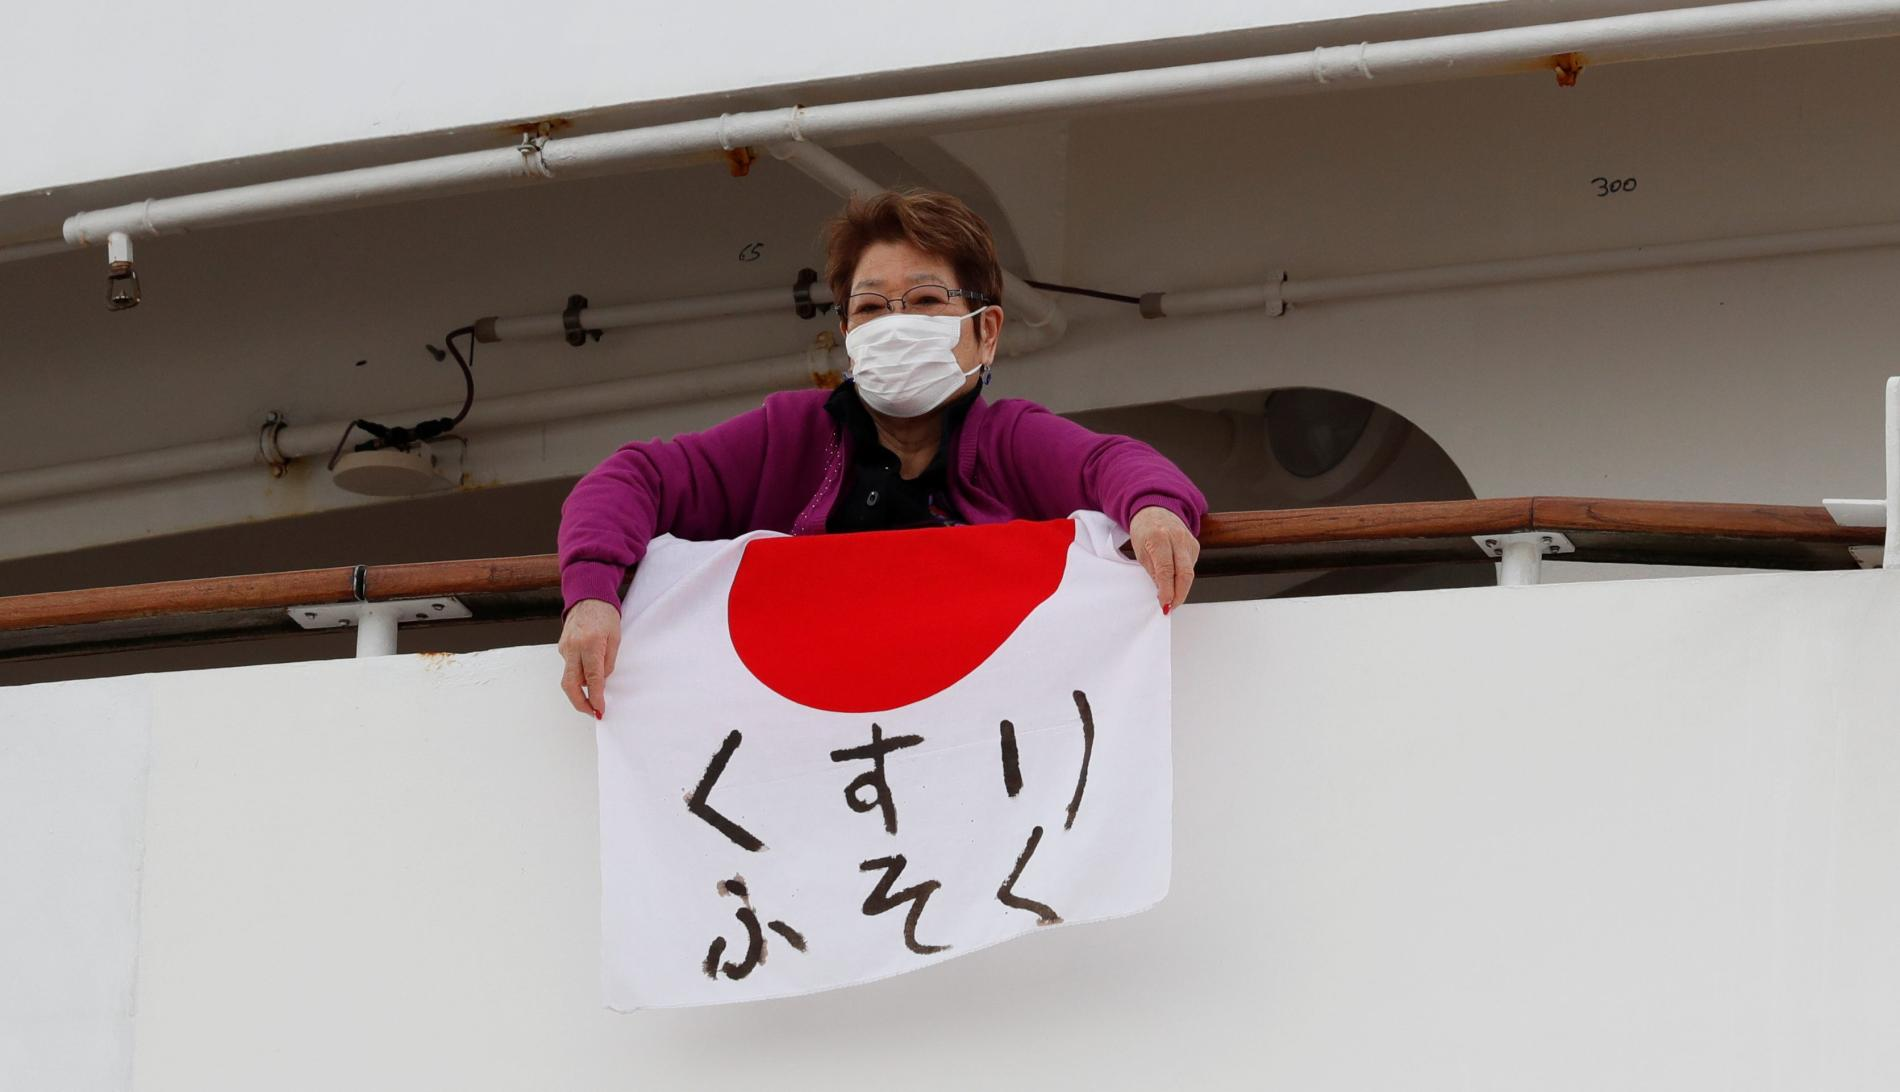 A cruise ship docked in Yokohama, Japan, recorded 41 new cases of the novel coronavirus today, taking the total number of infected passengers to 61.